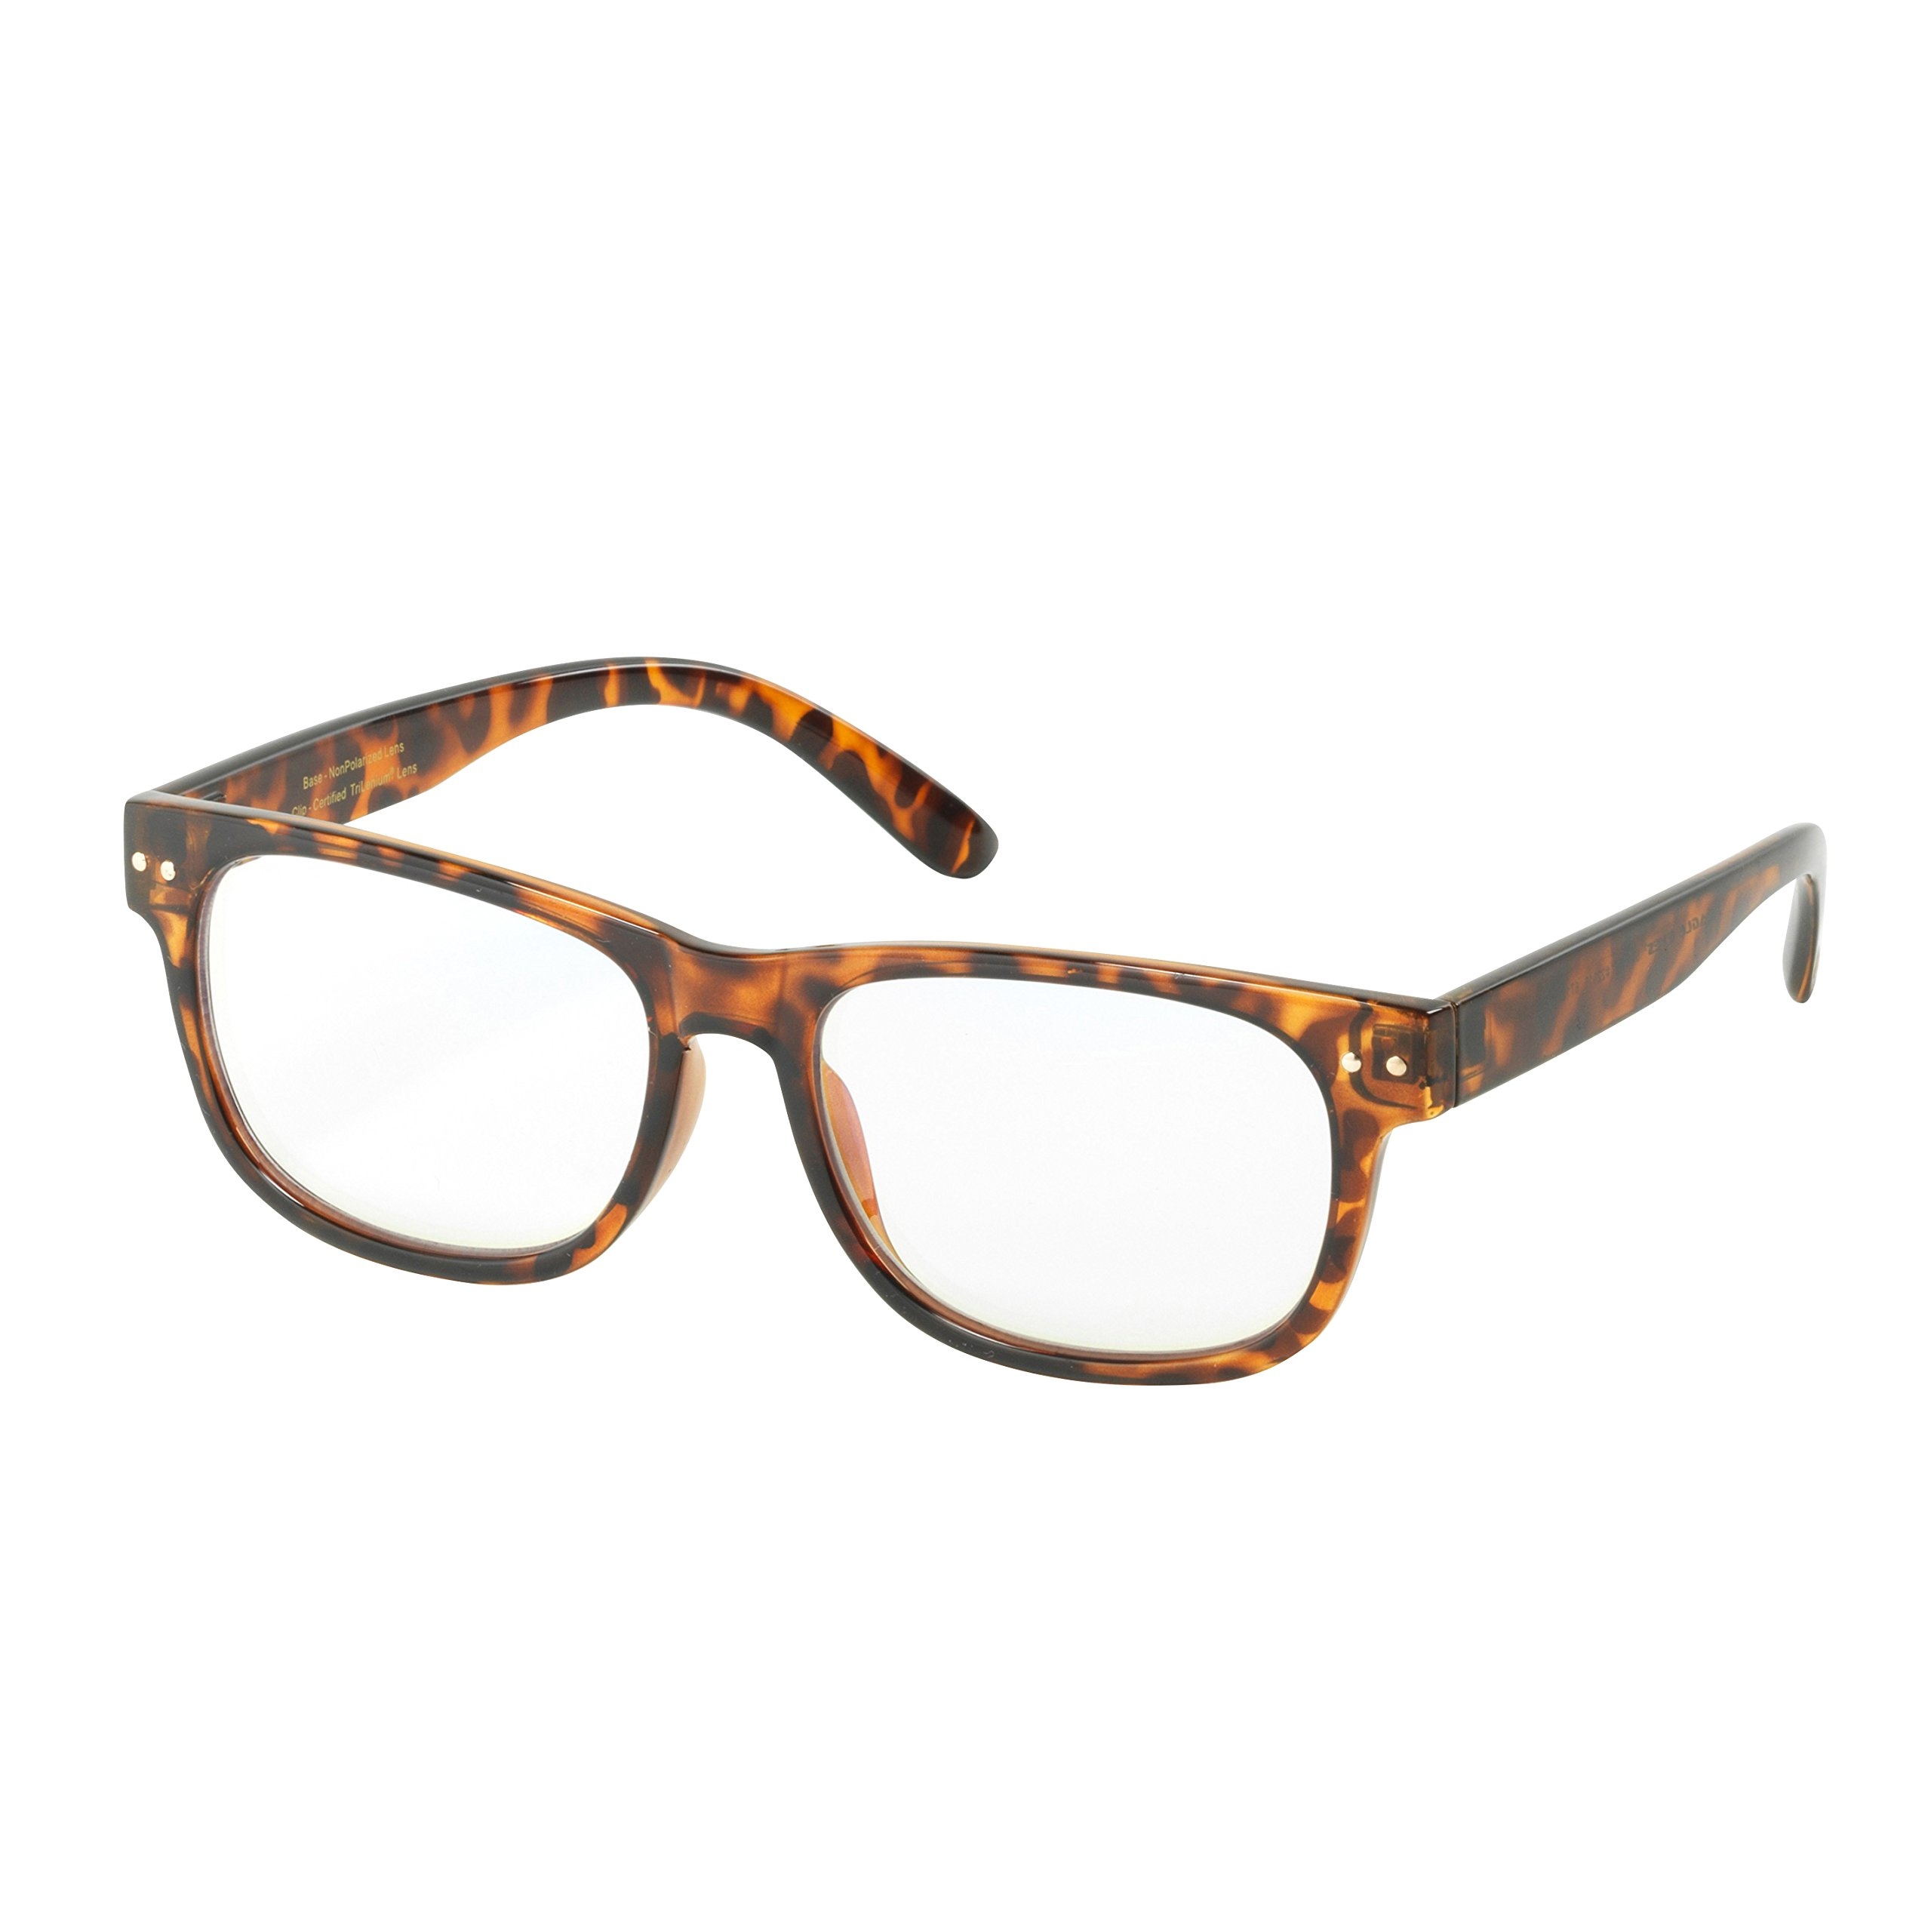 Eagle Eyes STARR Computer Glasses - Digital Glasses with Attachable Polarized Clip-Ons